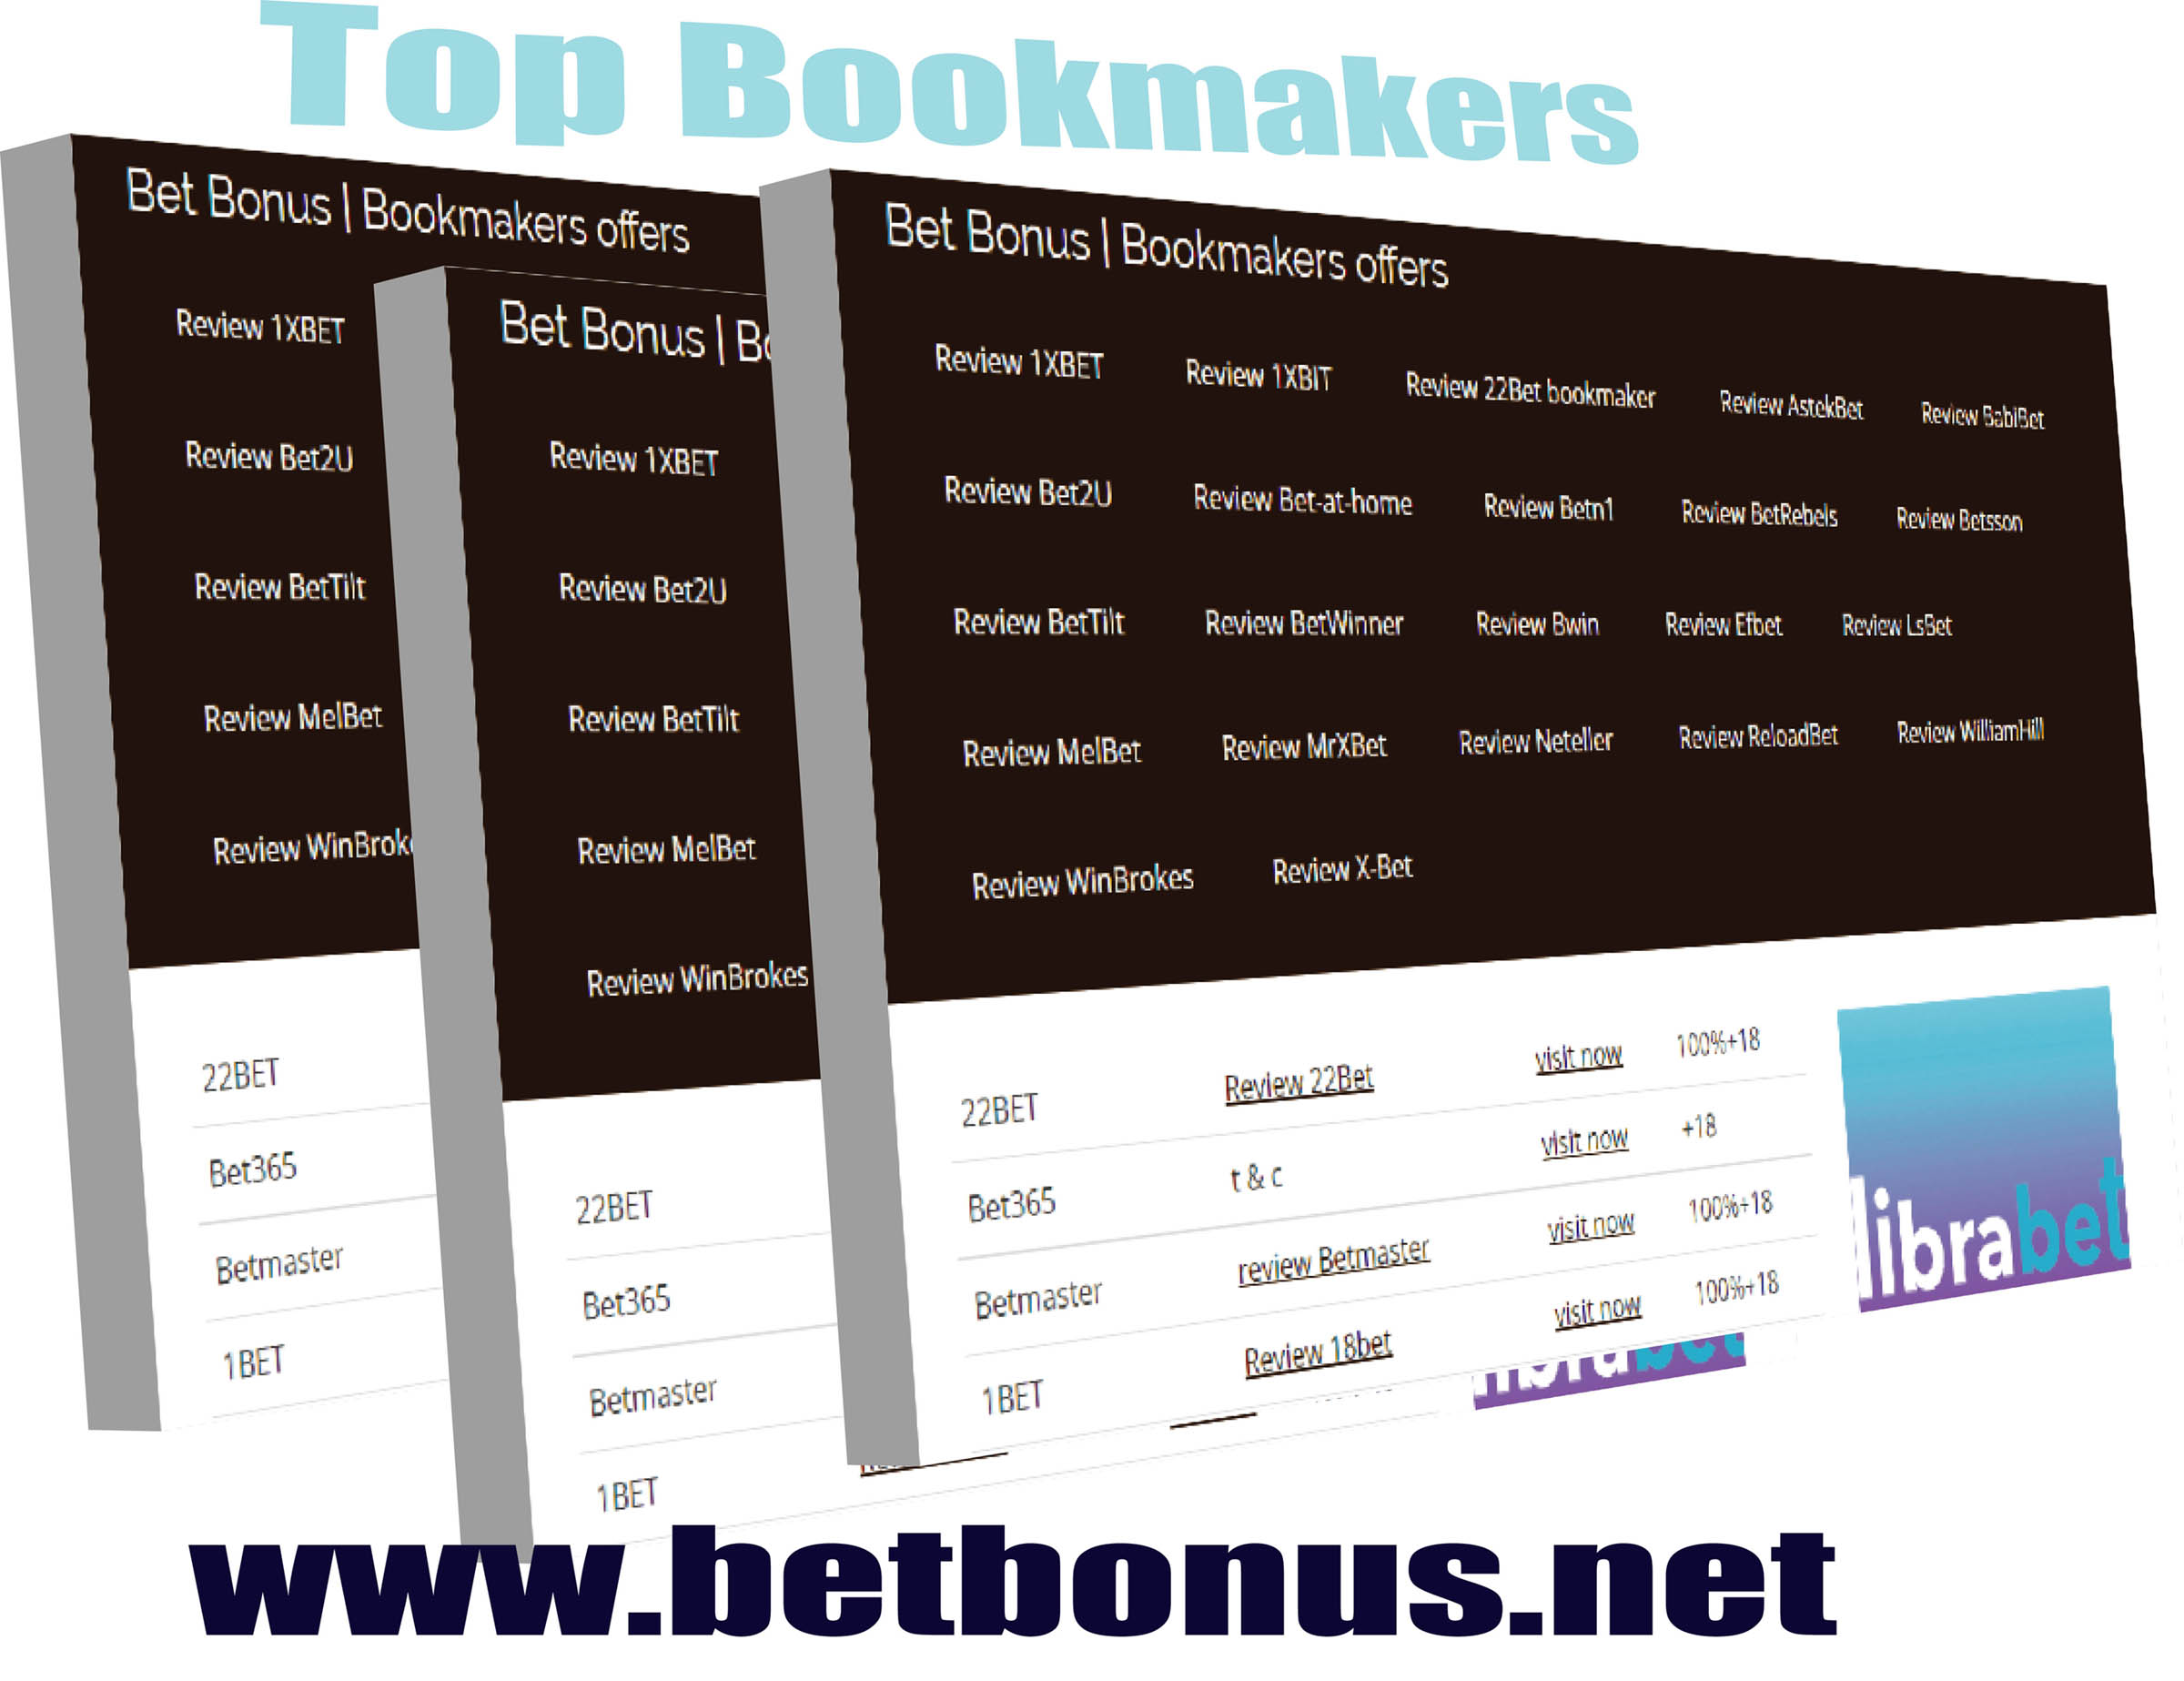 Top Bookmakers-Where to Find Them